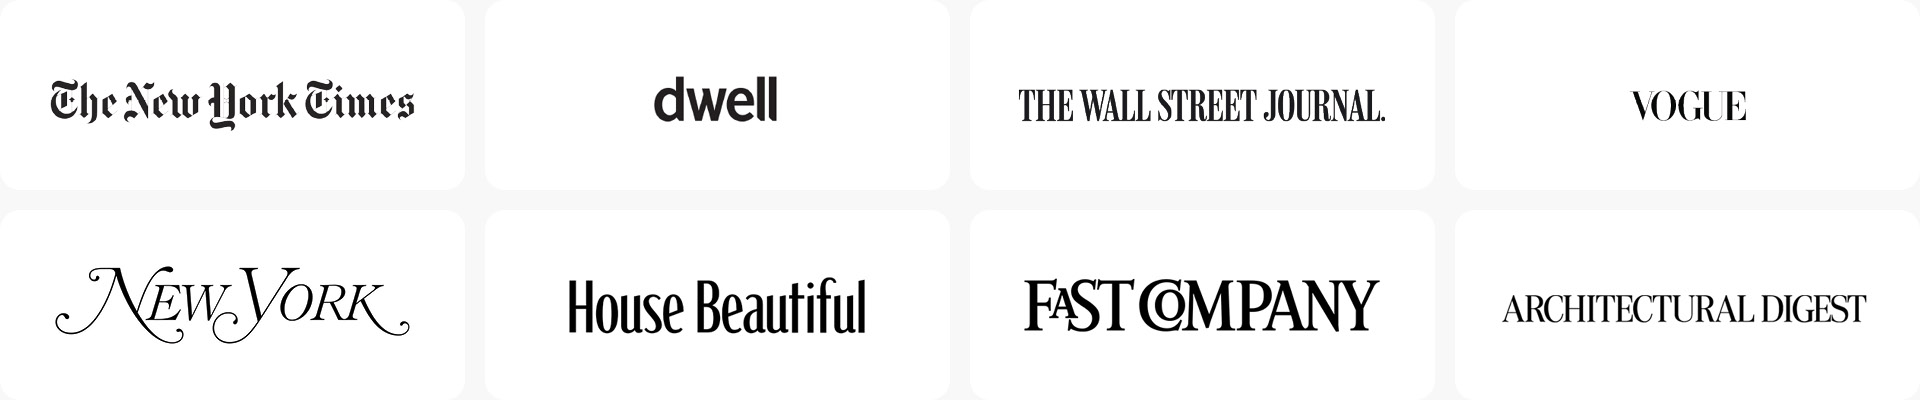 New York Times, Dwell, Wall Street Journal, Vogue, New York Magazine, House Beautiful, Fast Company, Architectural Digest